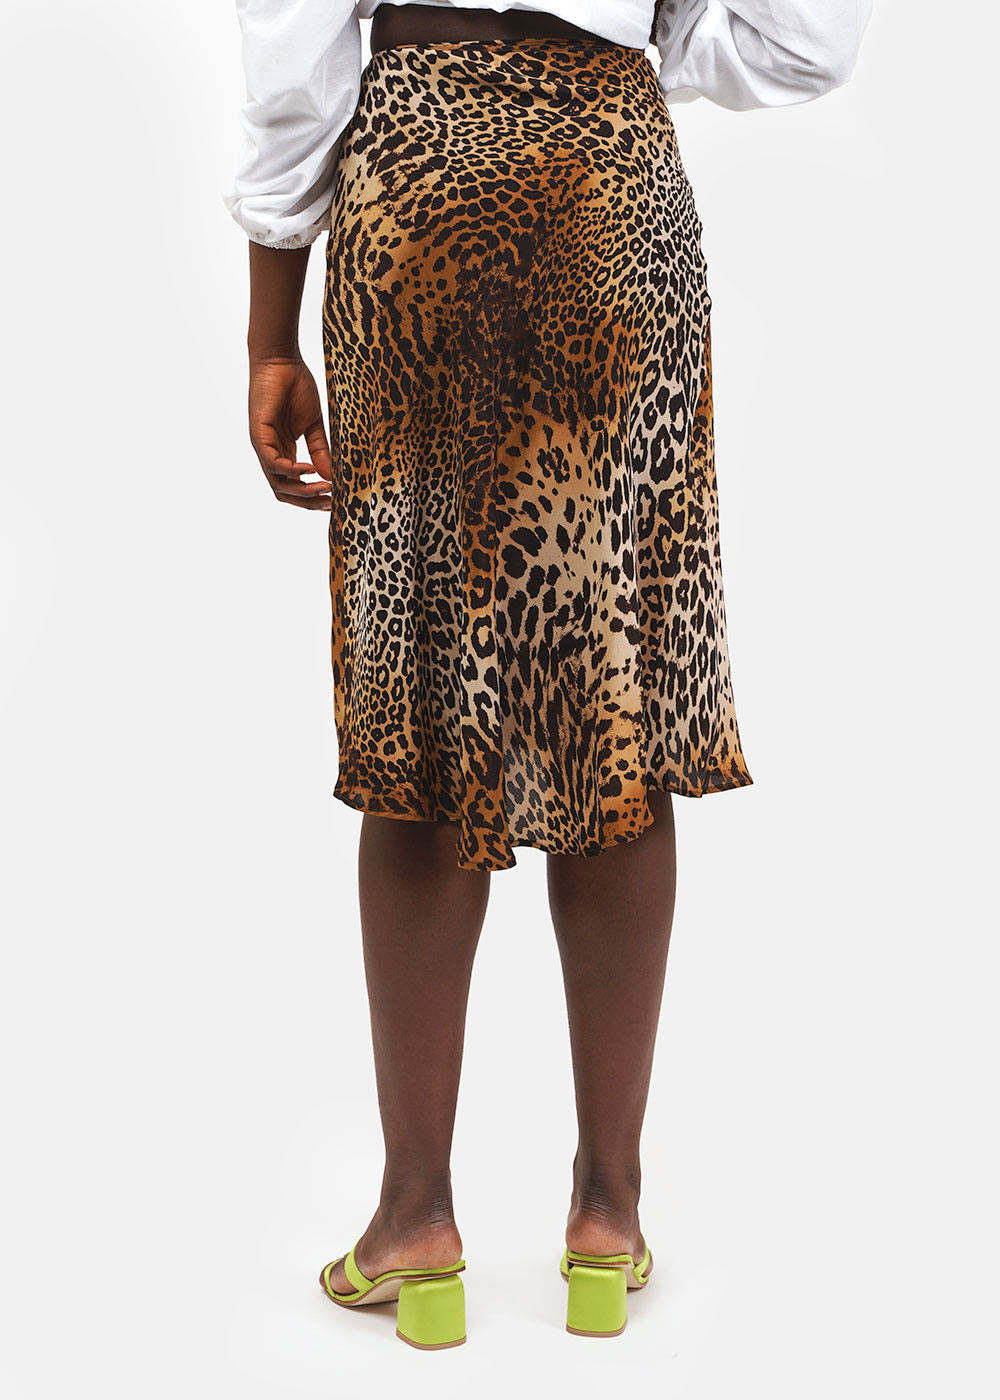 Ciao Lucia Leopard Carlotta Skirt — Shop sustainable fashion and slow fashion at New Classics Studios